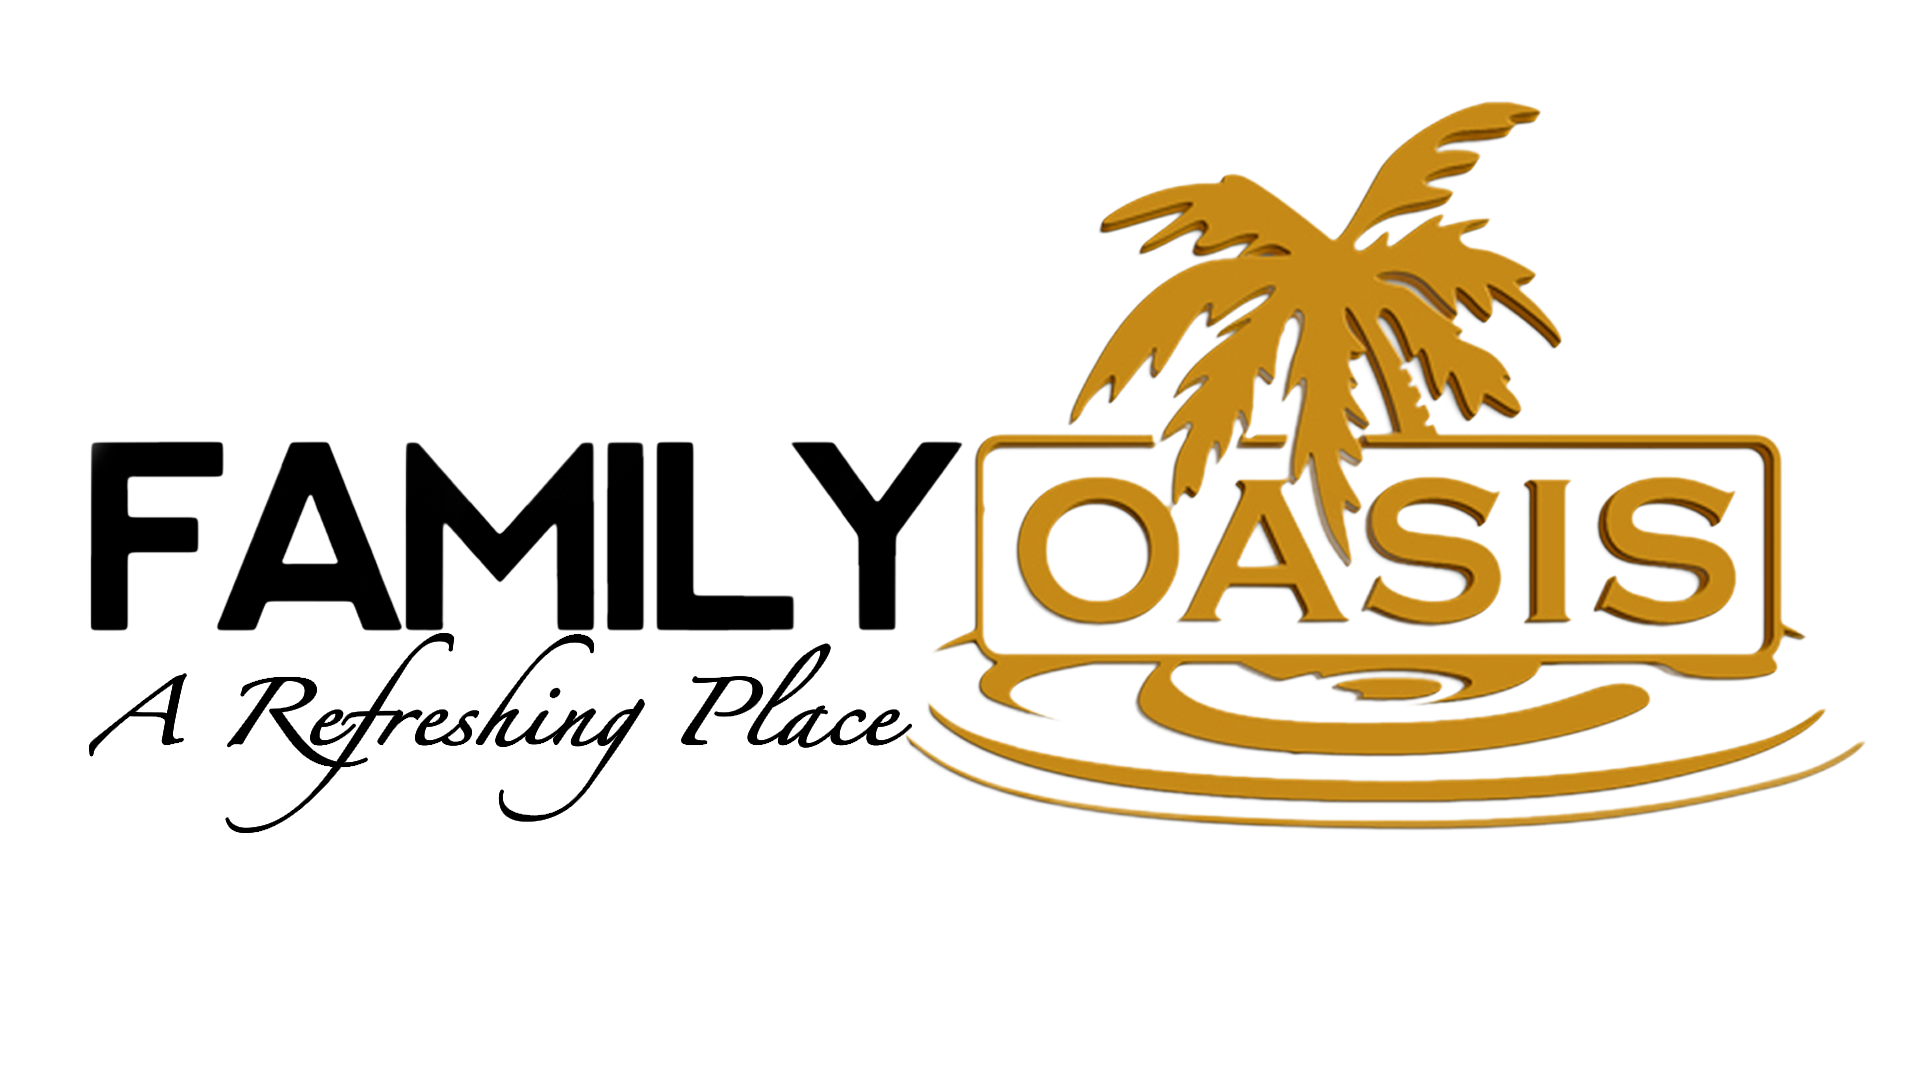 Family Oasis Victory Church of Saint Petersburg, FL